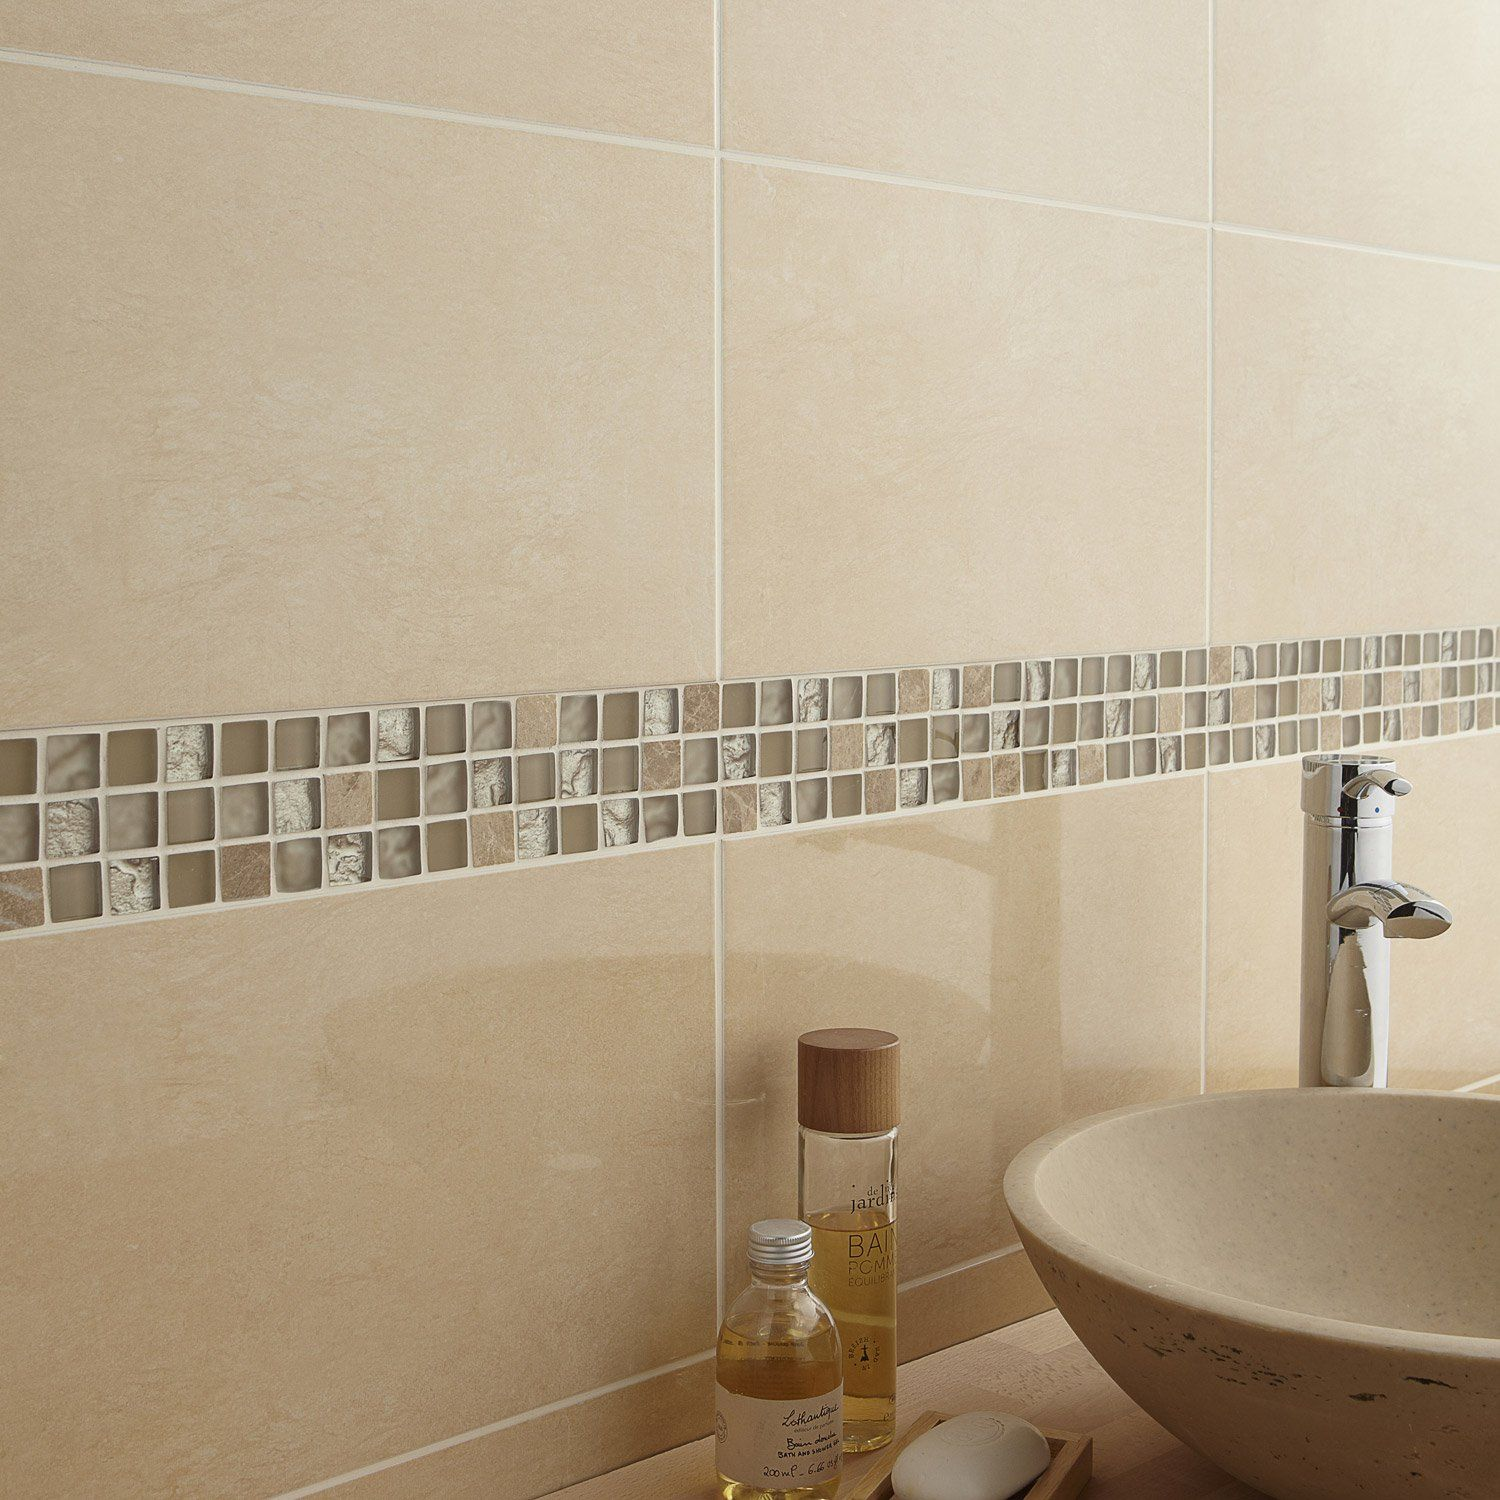 Destination du carrelage mur aspect mati re aspect marbre for Carrelage salle de bain jaune